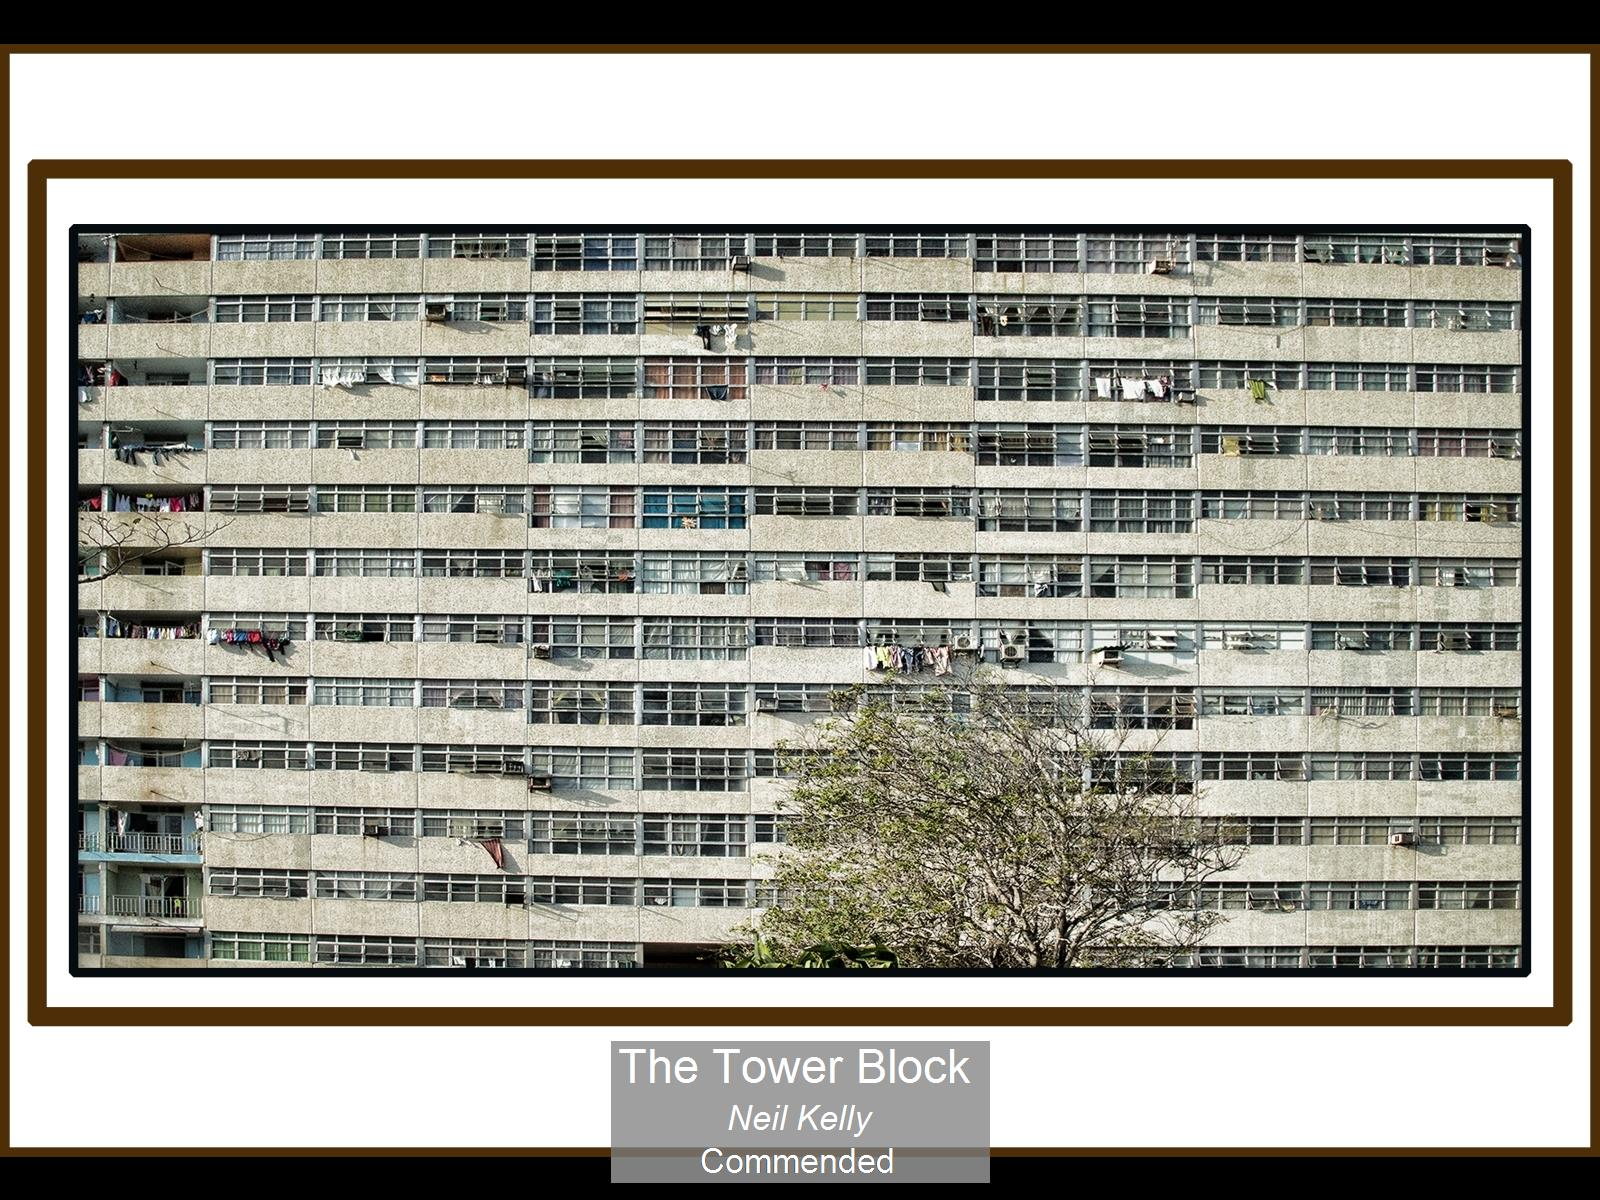 Comm_The Tower Block_Neil Kelly